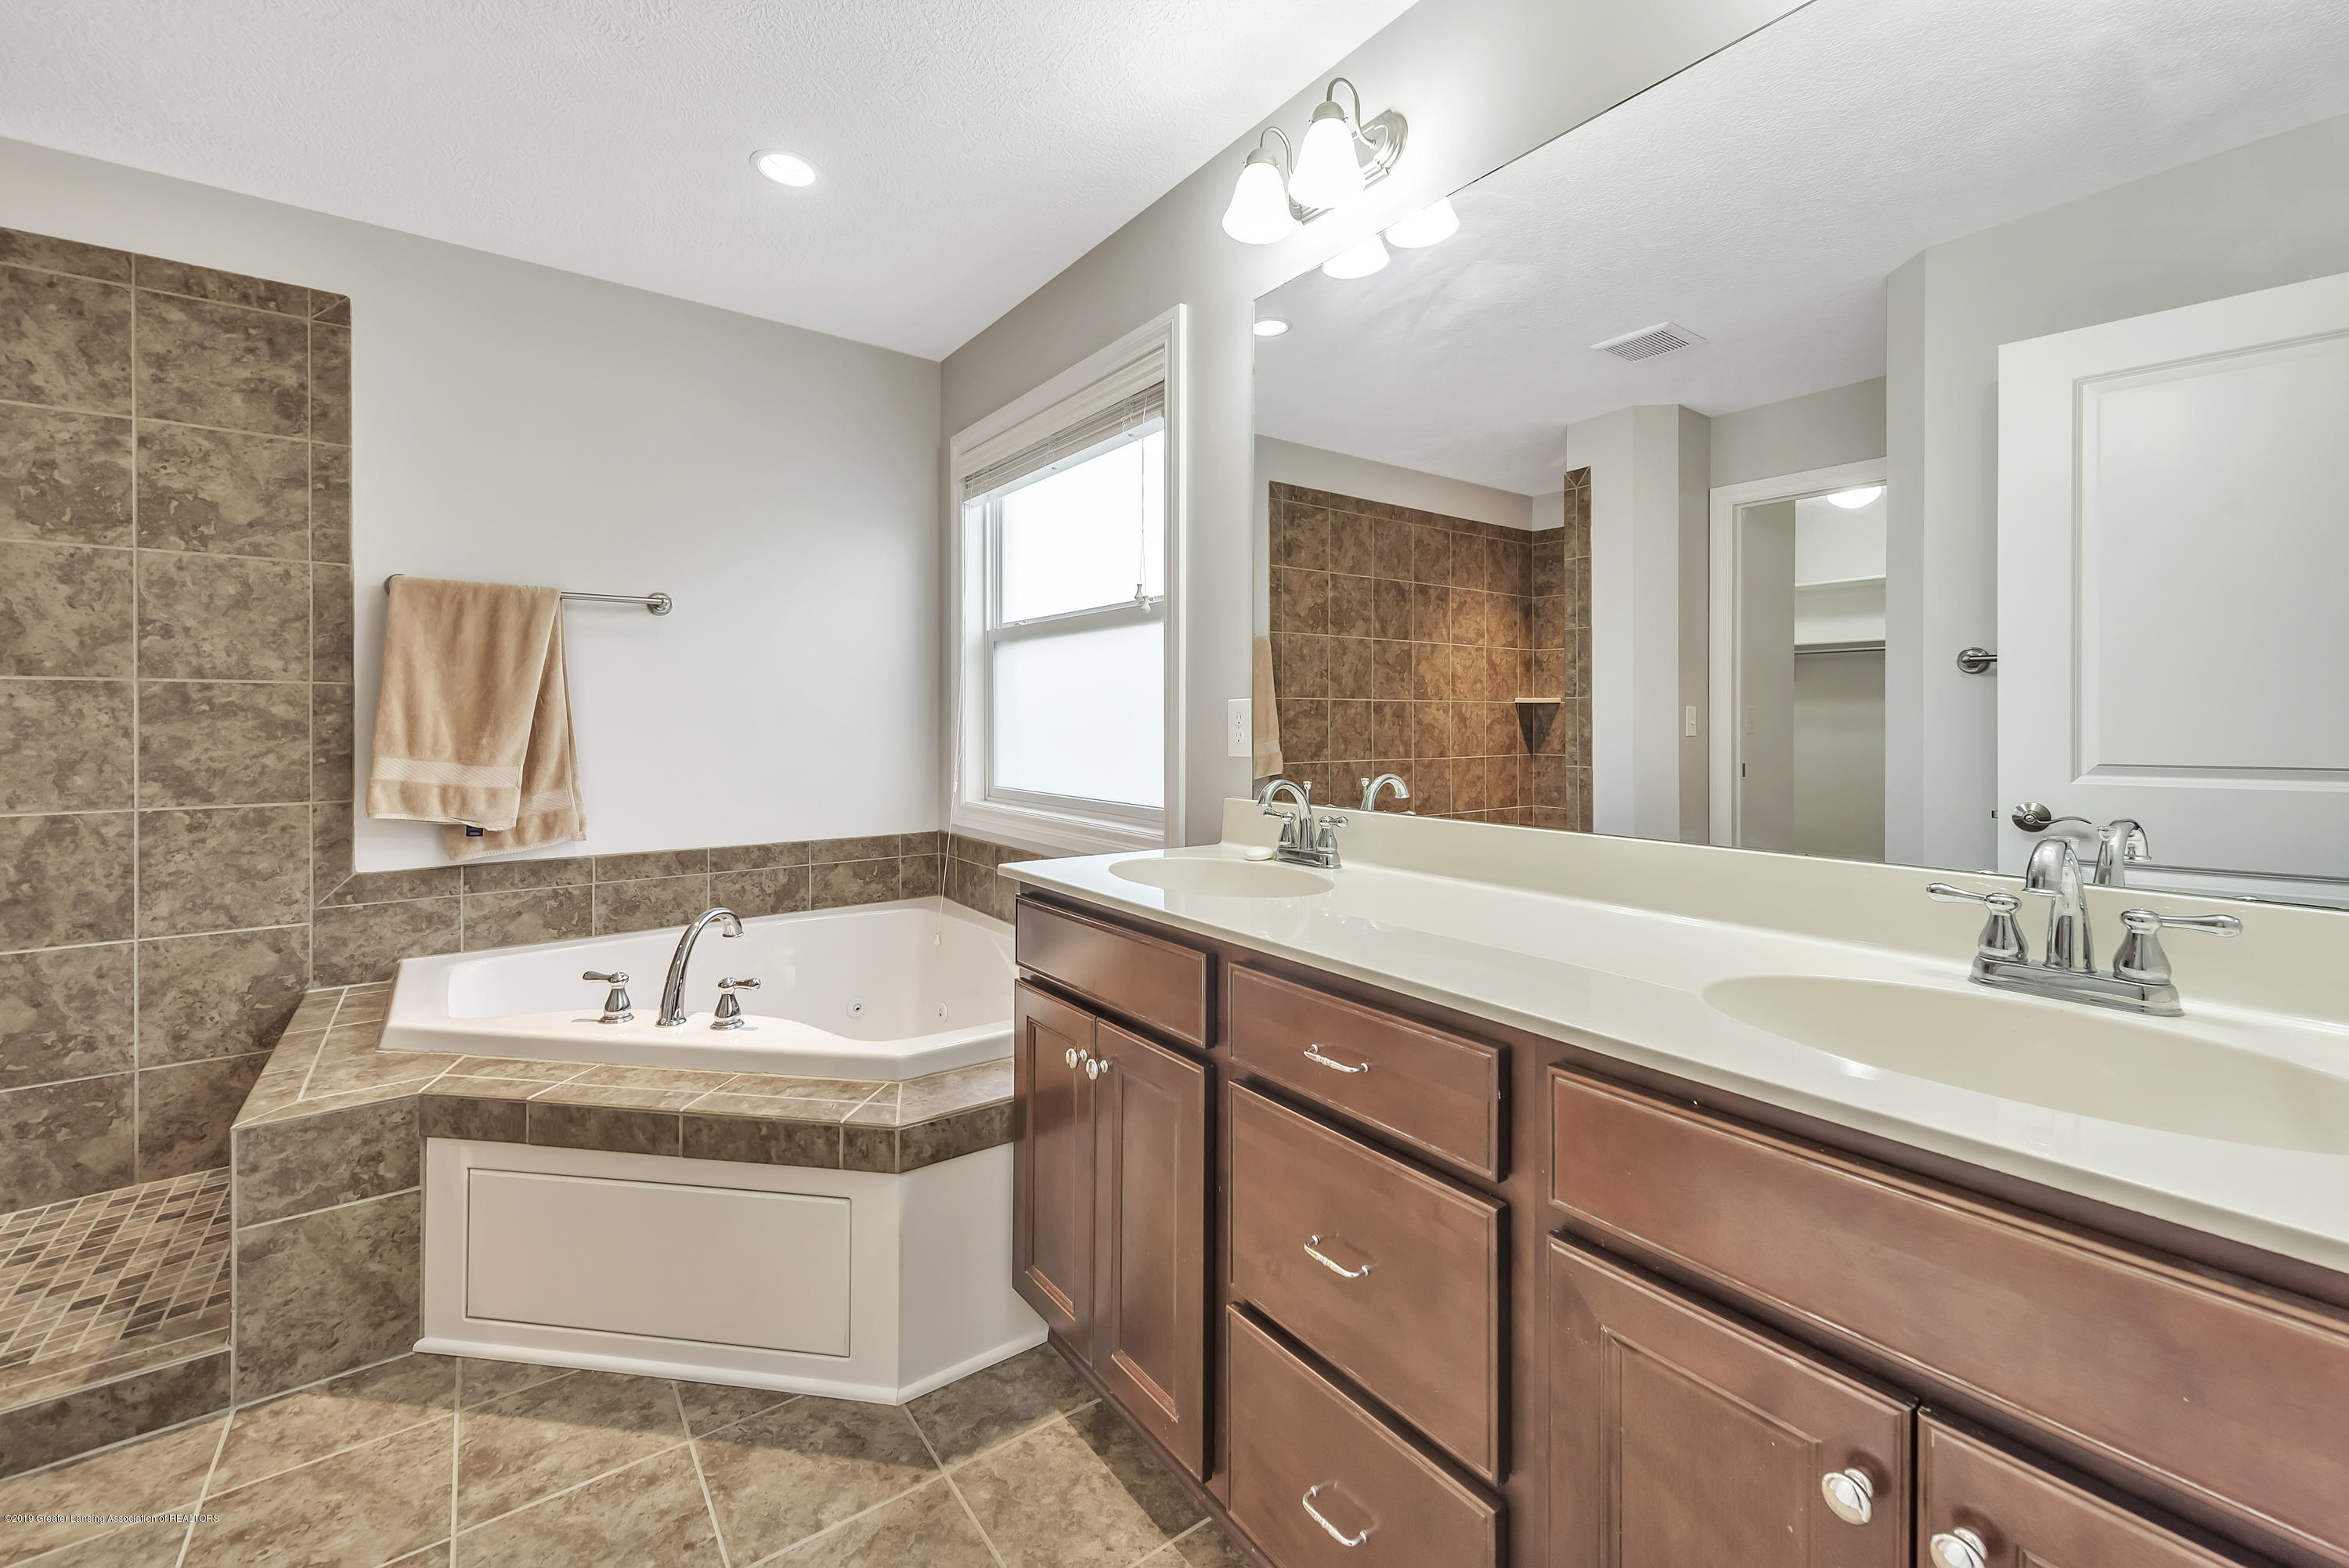 4229 Rain Forest Cir - 4229-Rainforest-Circle-Okemos-MI-windows - 31